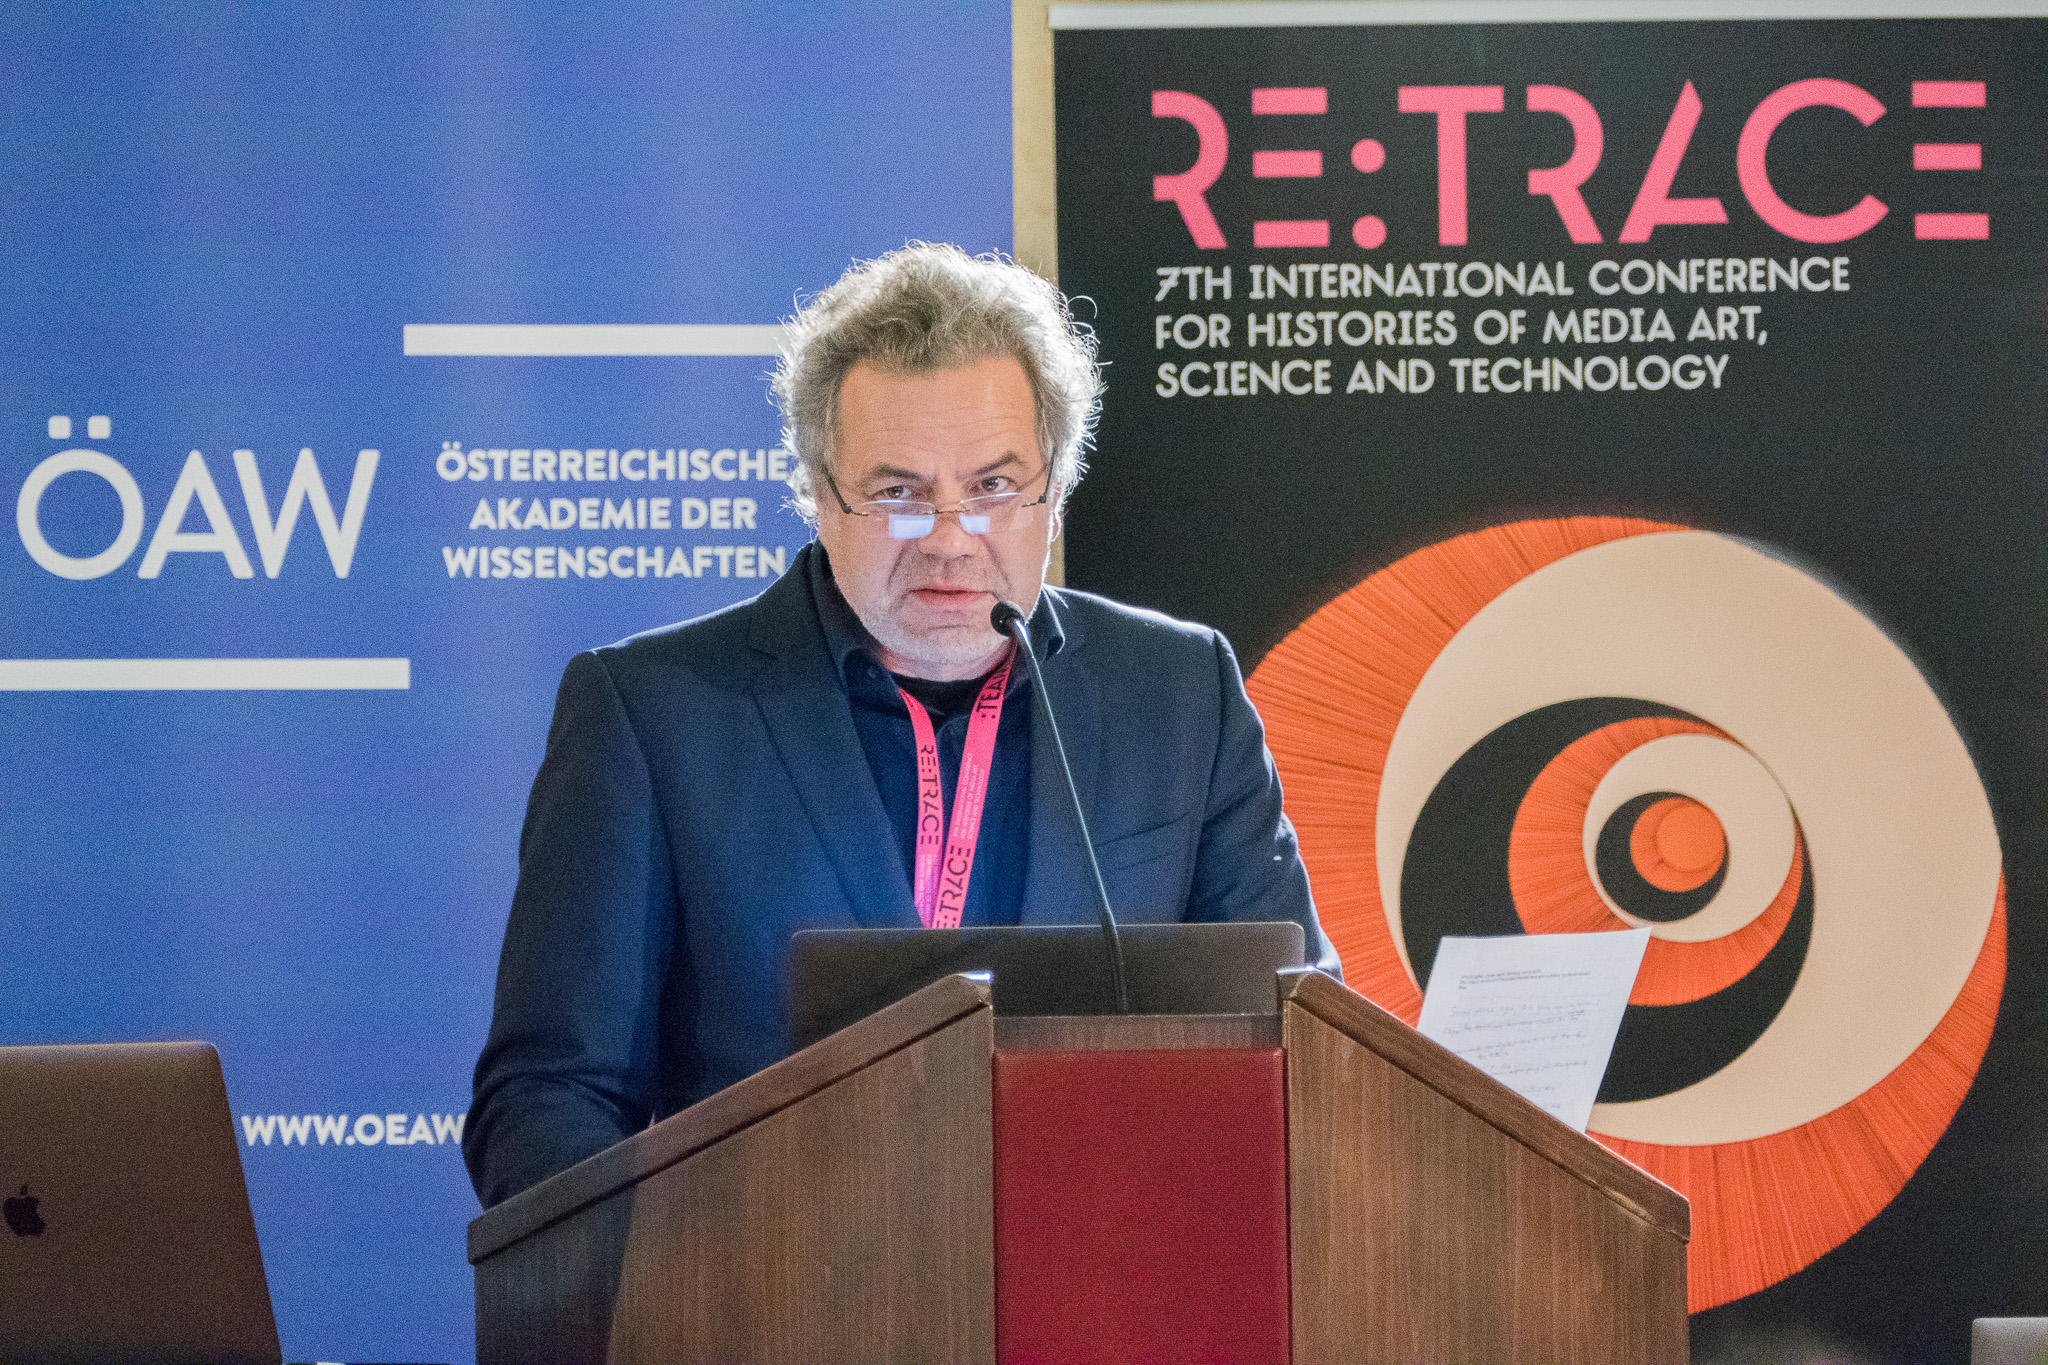 Oliver Grau | Re:Trace | Day 3| Austrian Academy of Sciences Vienna